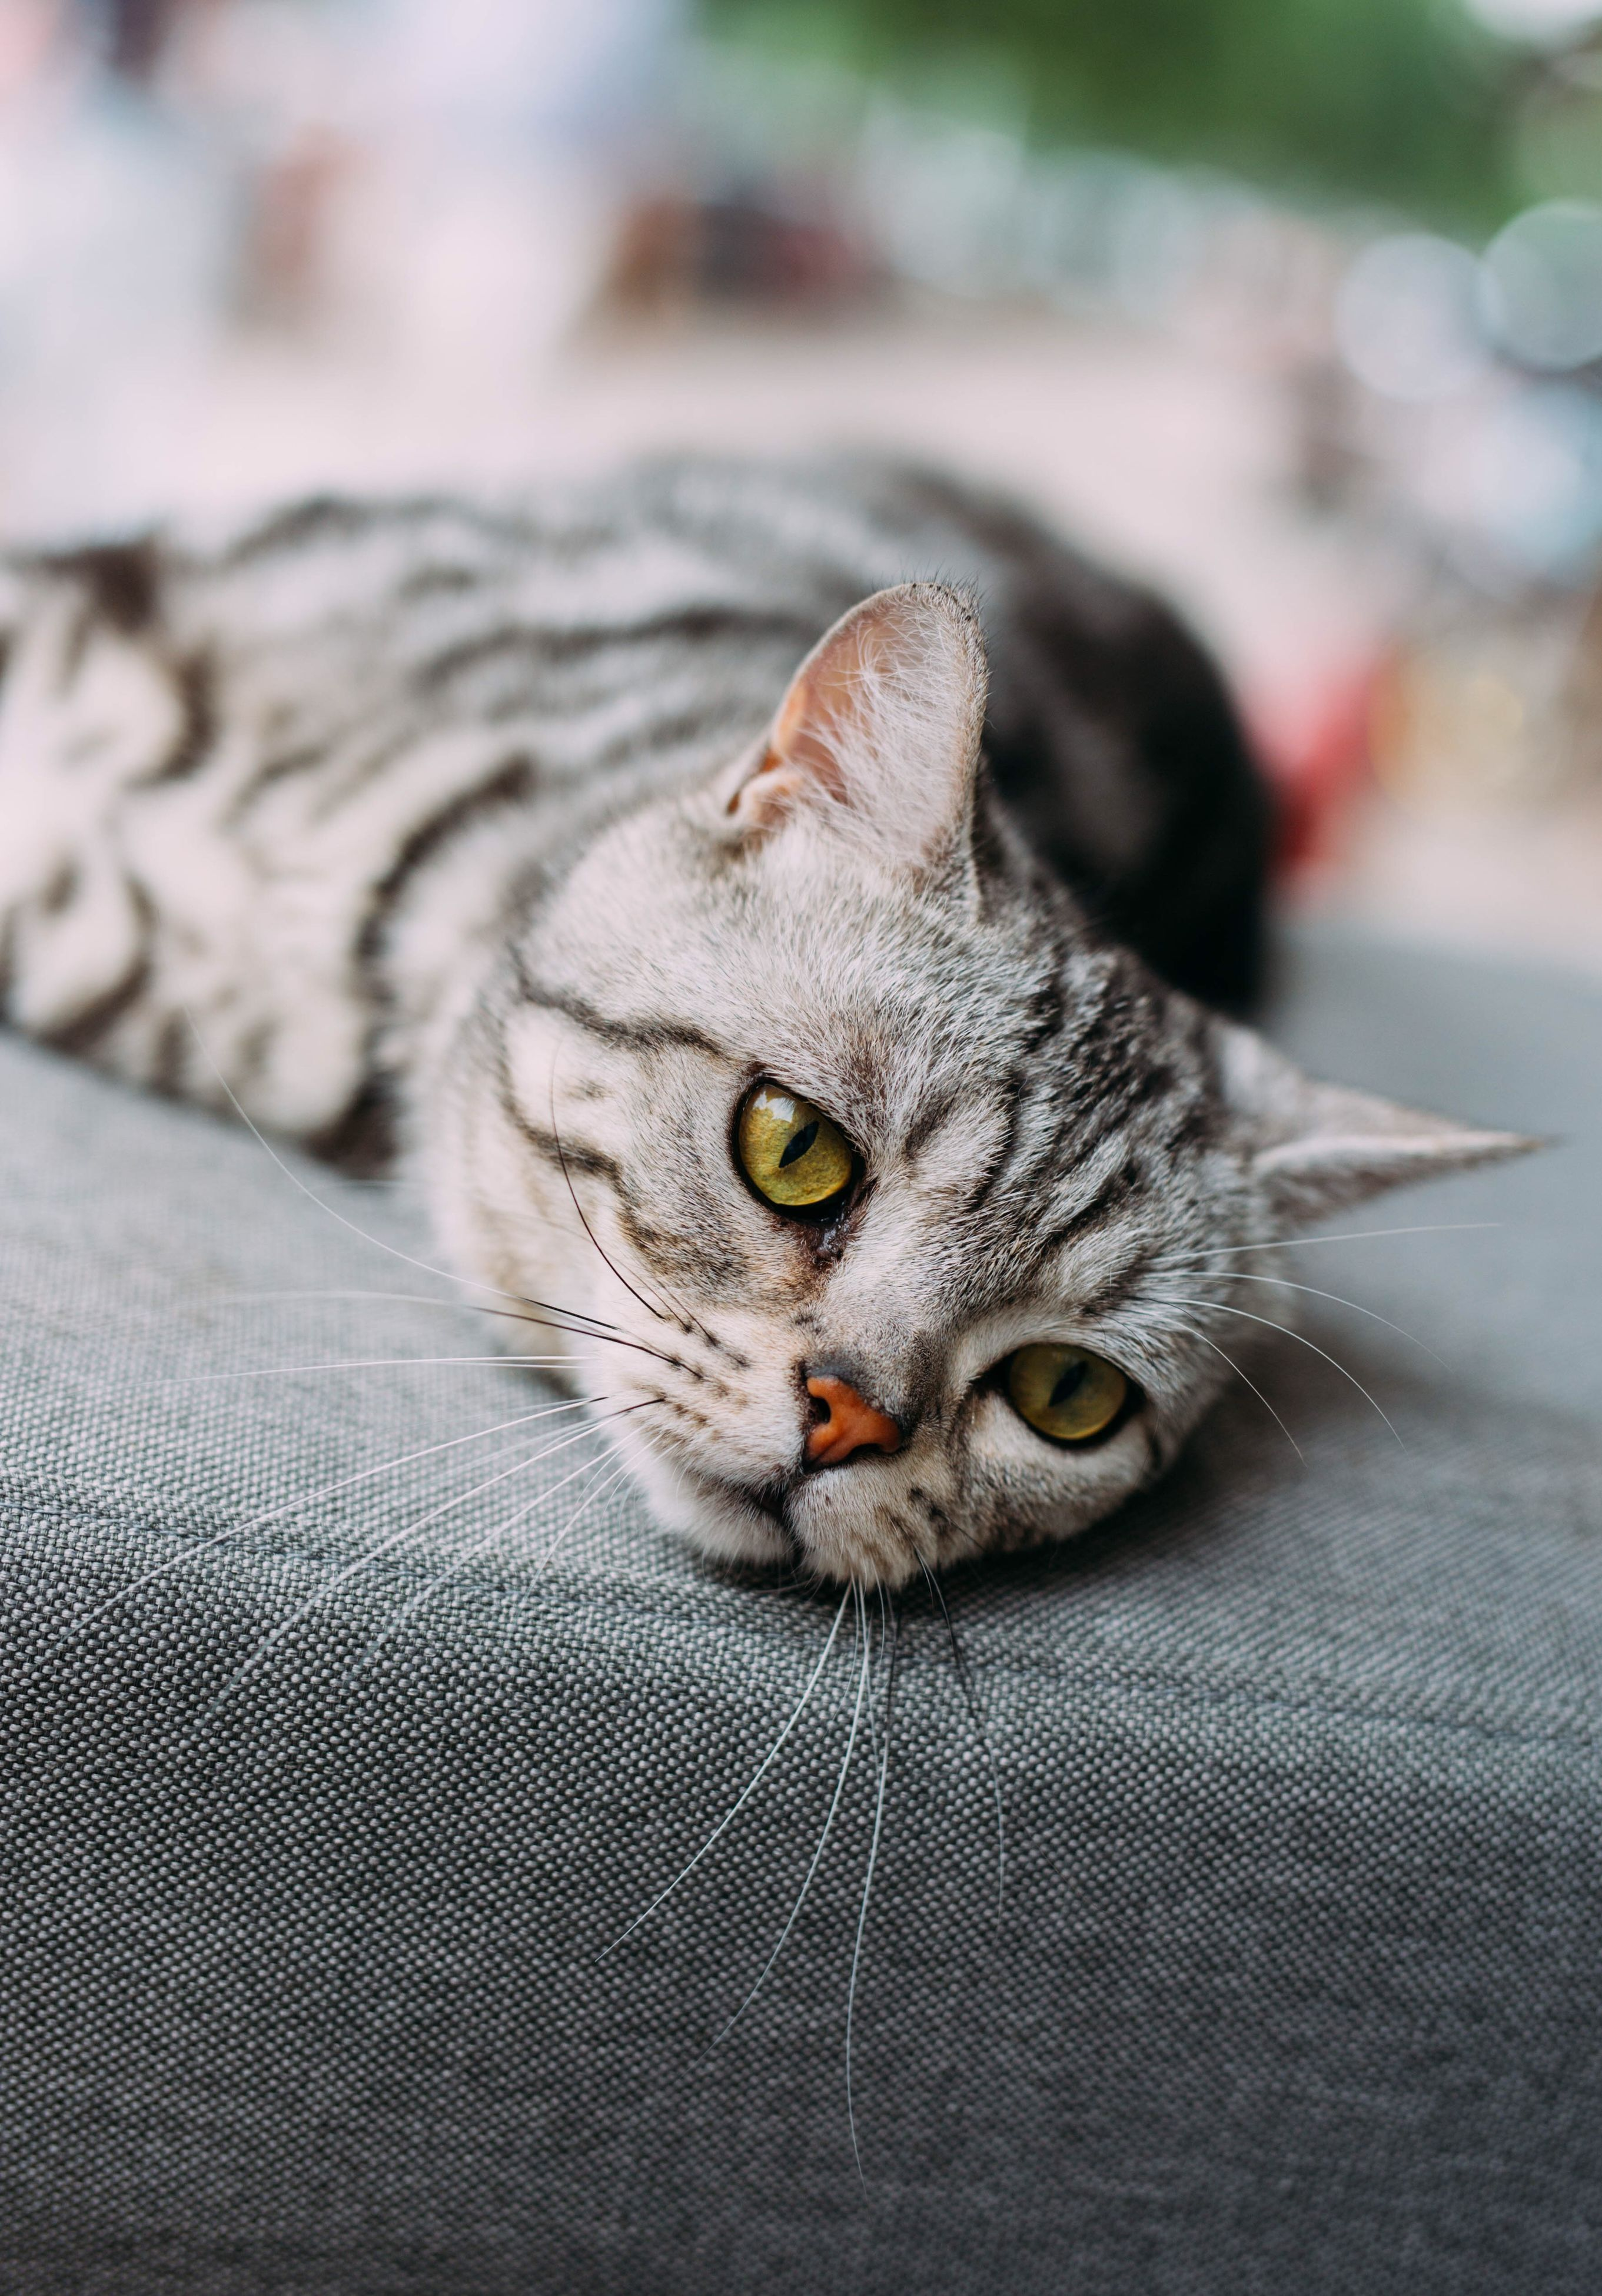 domestic cat, cat, pets, feline, one animal, animal themes, domestic animals, whisker, portrait, mammal, indoors, looking at camera, relaxation, close-up, animal head, alertness, animal eye, staring, lying down, focus on foreground